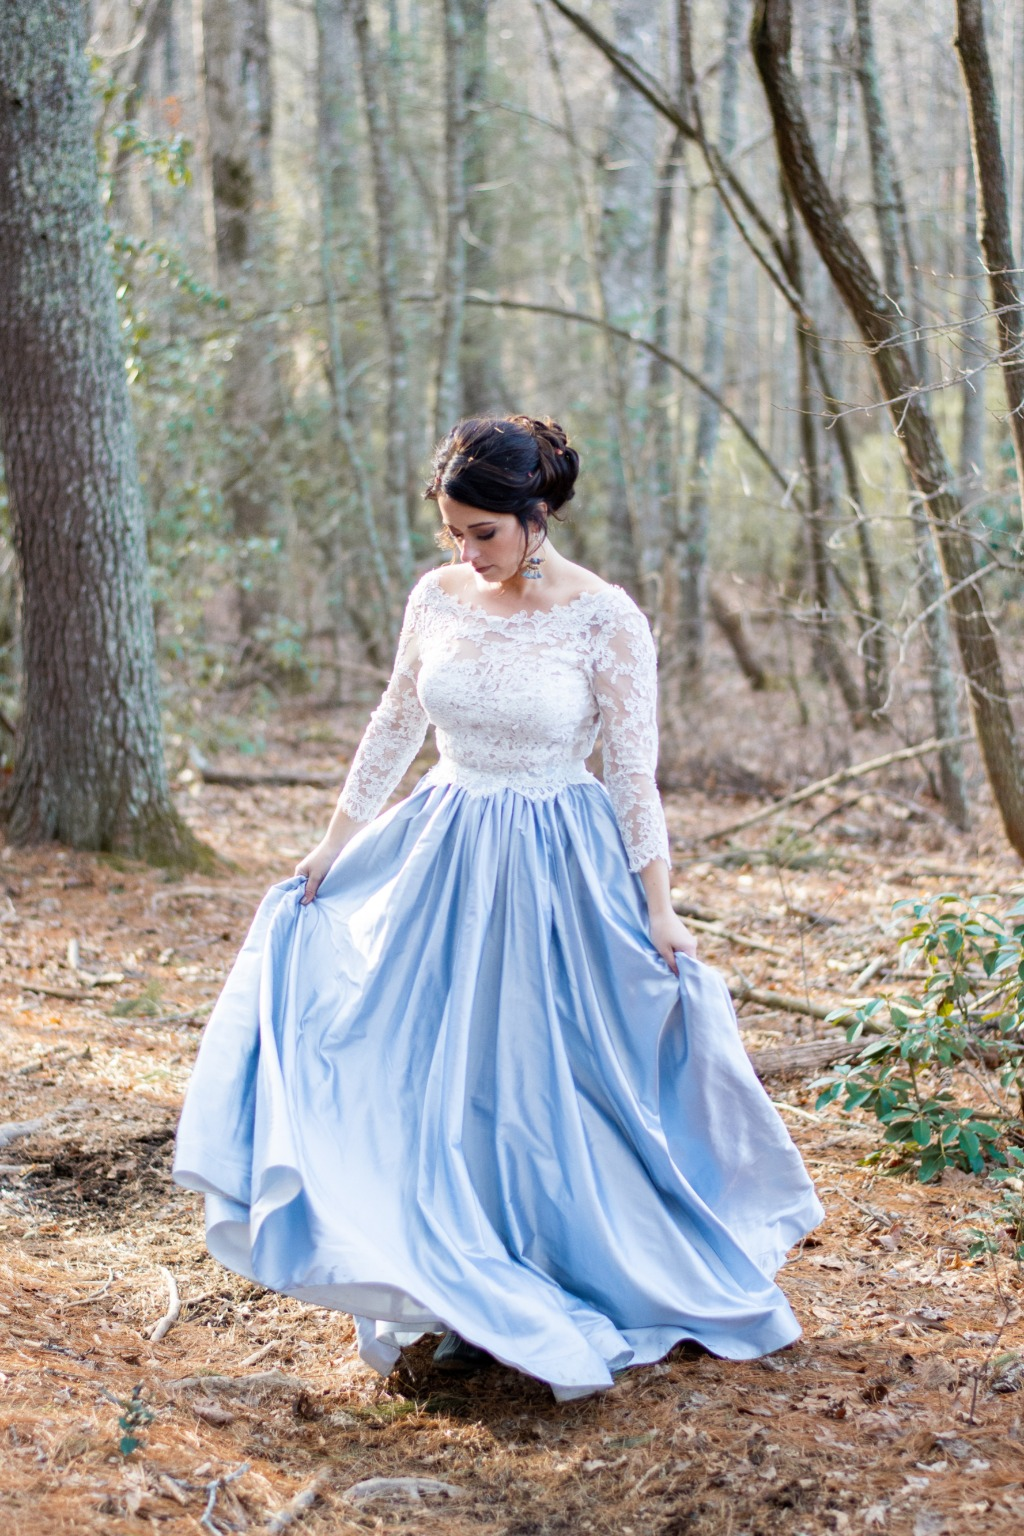 Sweet pea wedding inspiration. Wedding dress: Lea-Ann Belter Celestia top and Sky skirt in blue | photographer: Victoria Grace Photography